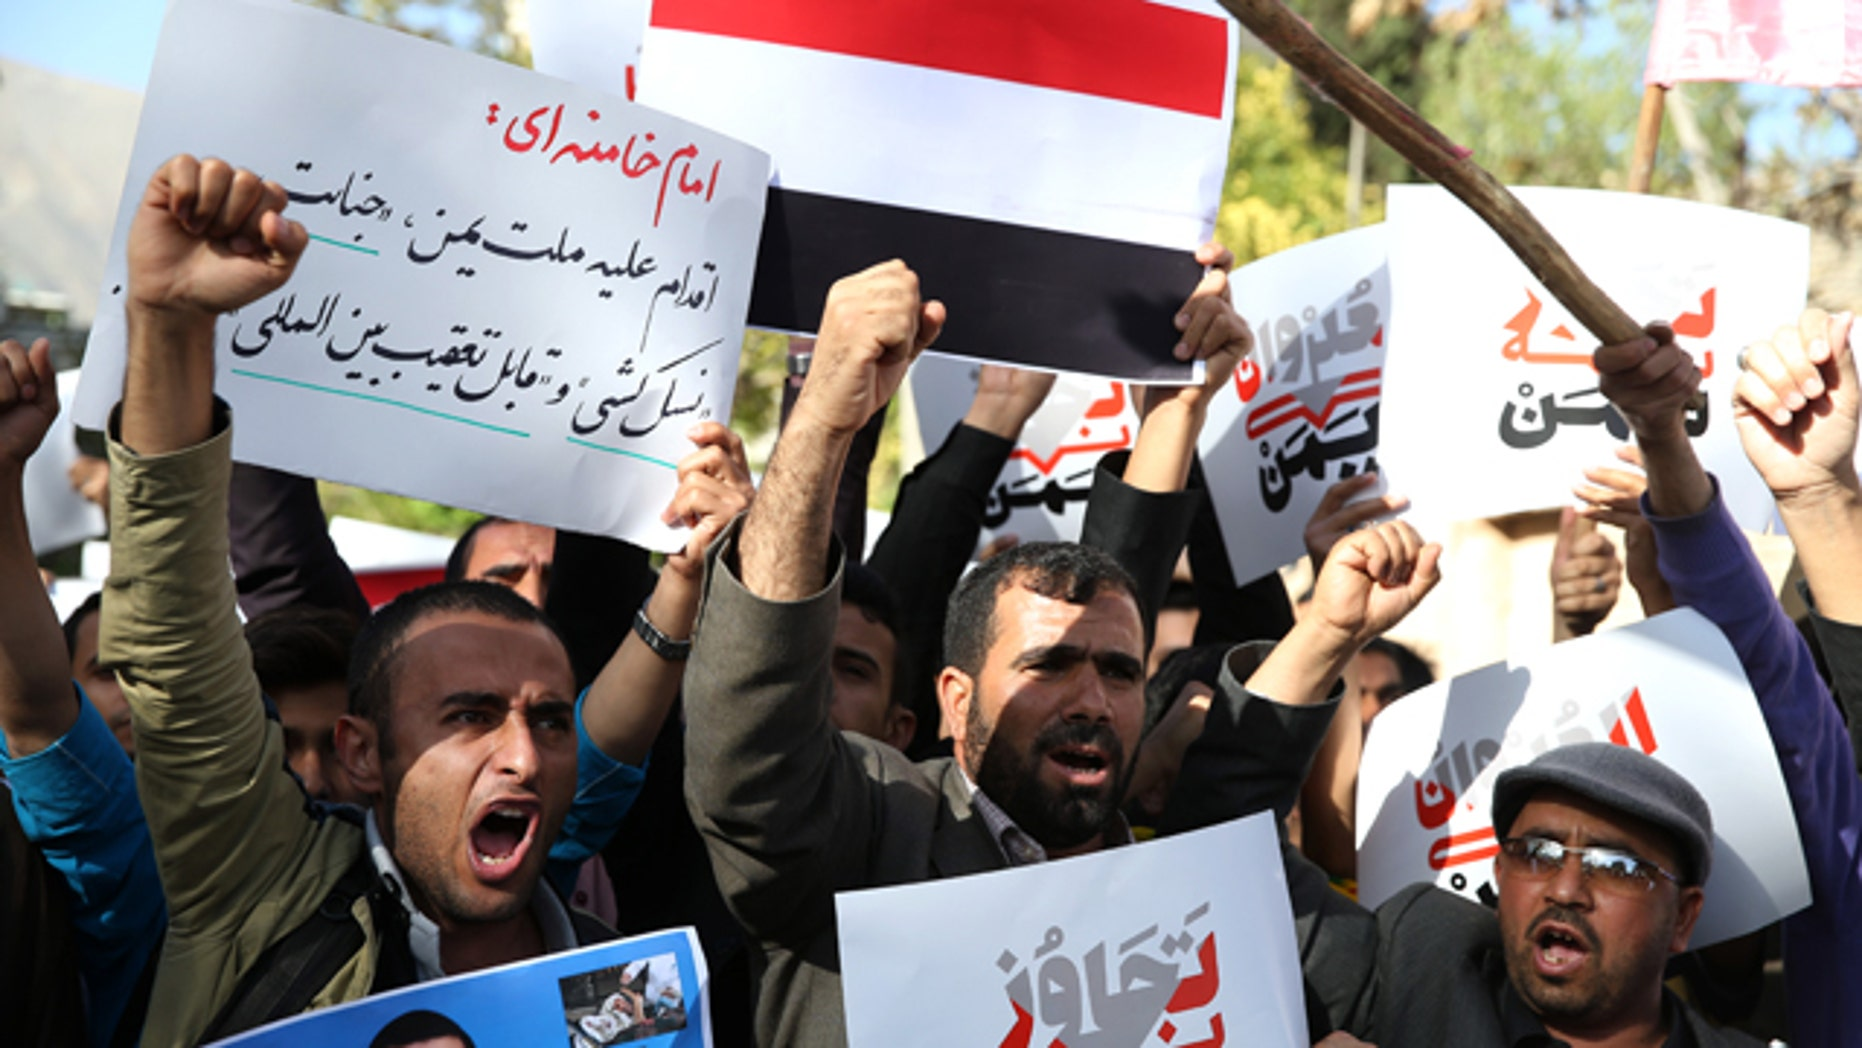 April 13, 2015: Yemeni expatriates and Iranians chant slogans during a protest against the Saudi-led coalition strikes on Yemen, in front of the Saudi Embassy in Tehran. (AP Photo/Ebrahim Noroozi)